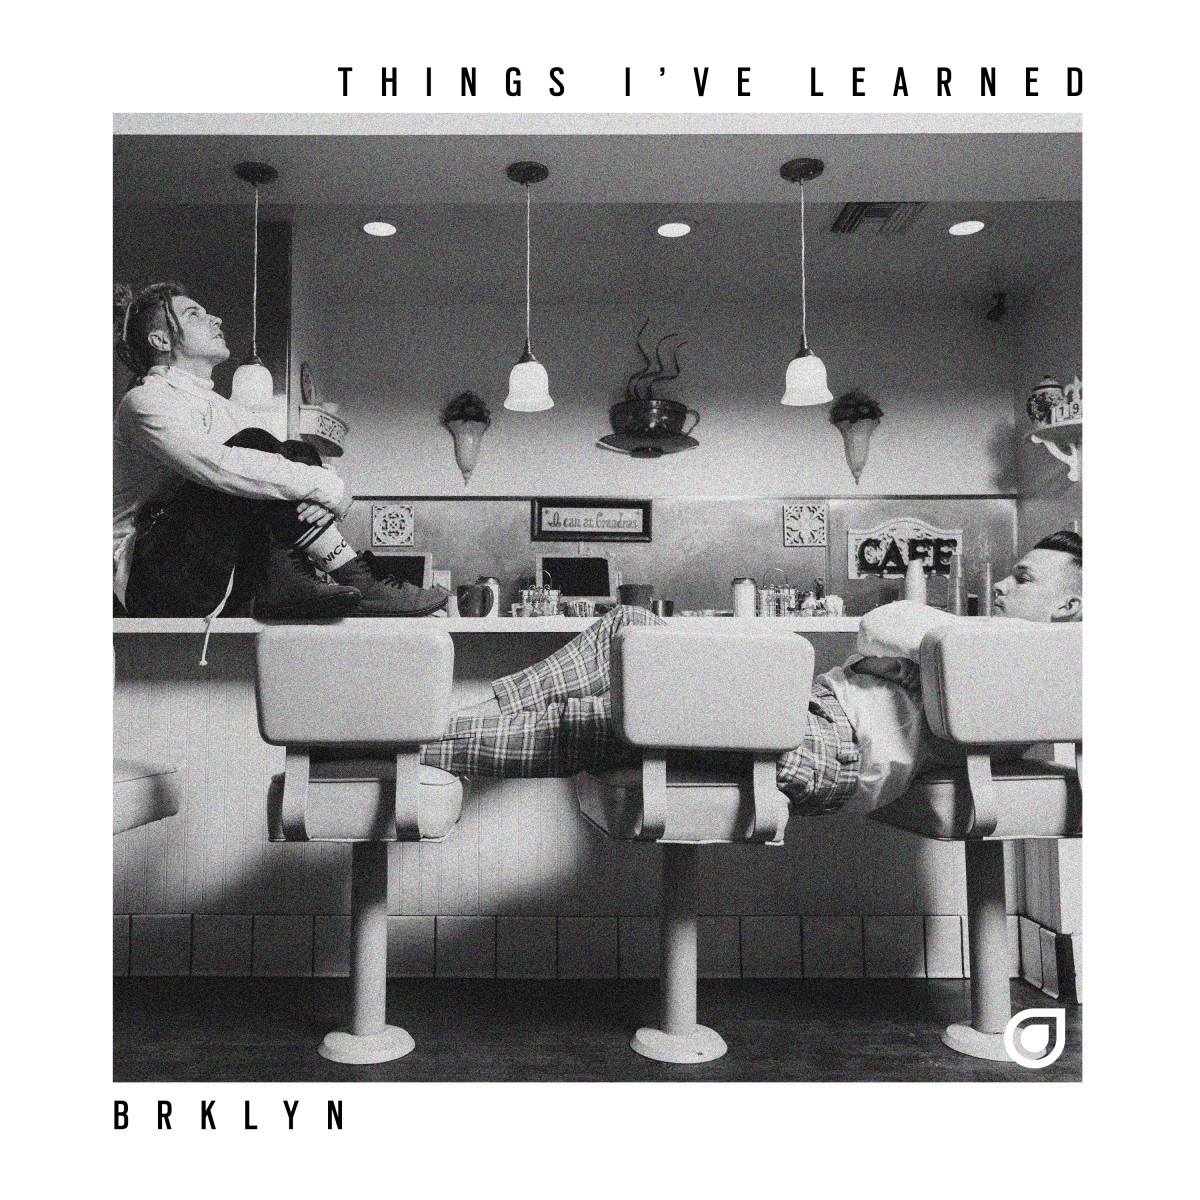 BRKLYN EP Cover - Things I've Learned (OUT NOW on ENhanced Music - Tritonal Label) -- EDM.com Feature & IG Takeover Announcement